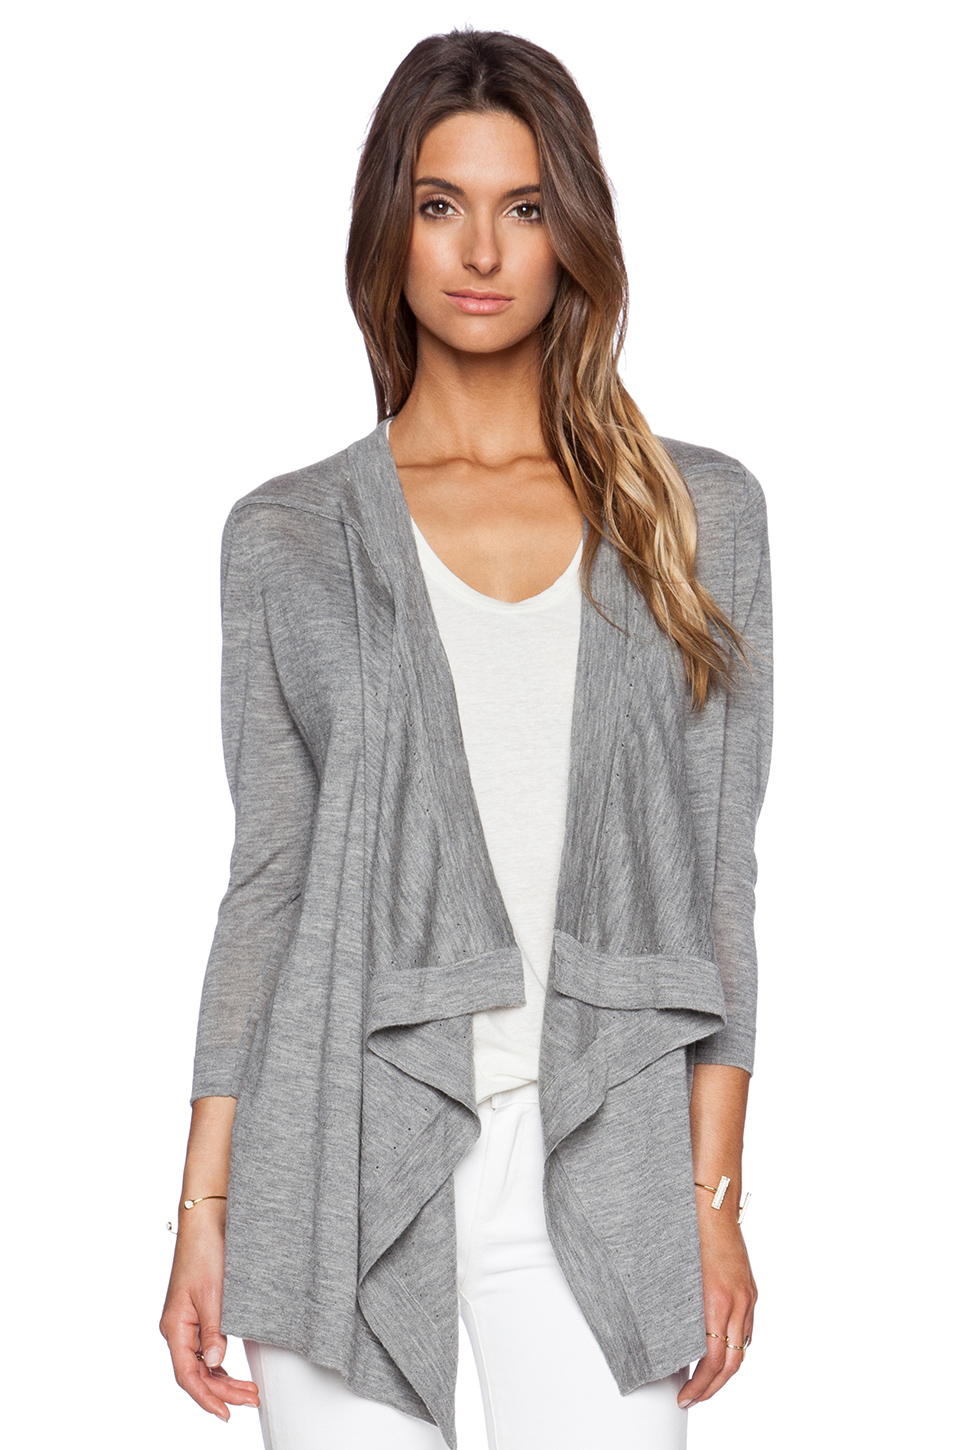 Autumn cashmere Waterfall Cardigan in Gray | Lyst